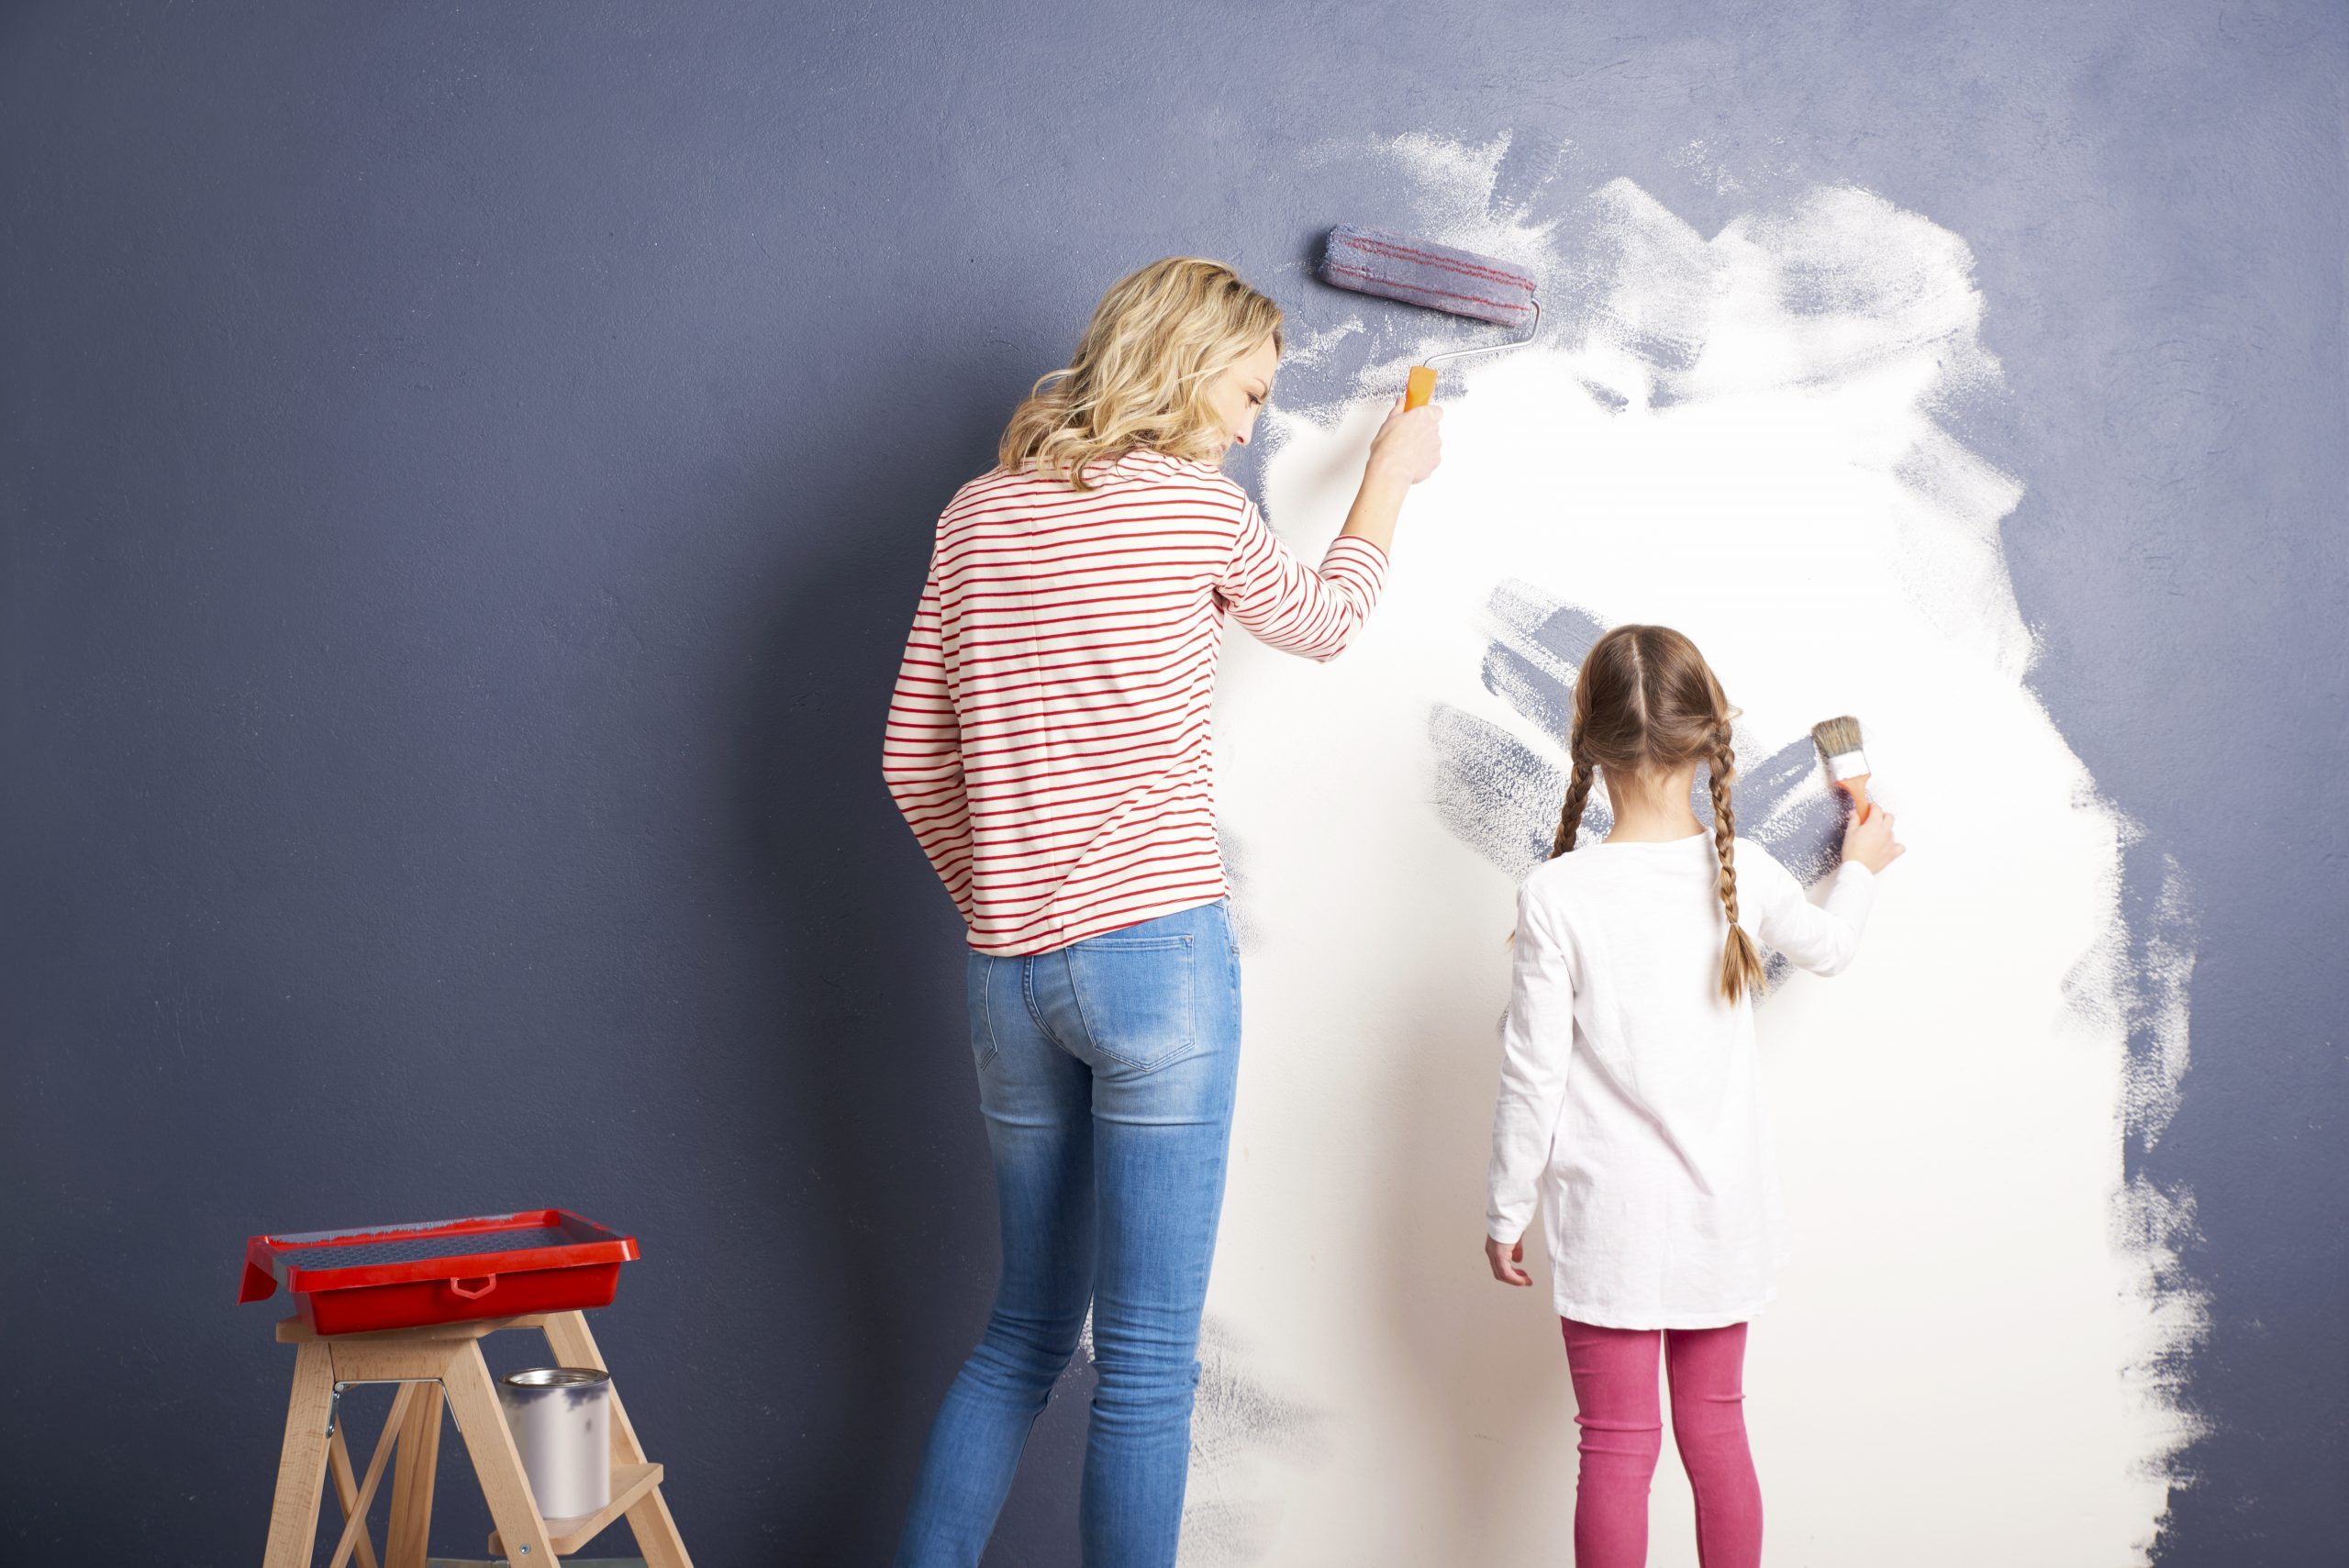 5 Diy Wall Paint Ideas To Revive Your Home Decor Shalimarpaints